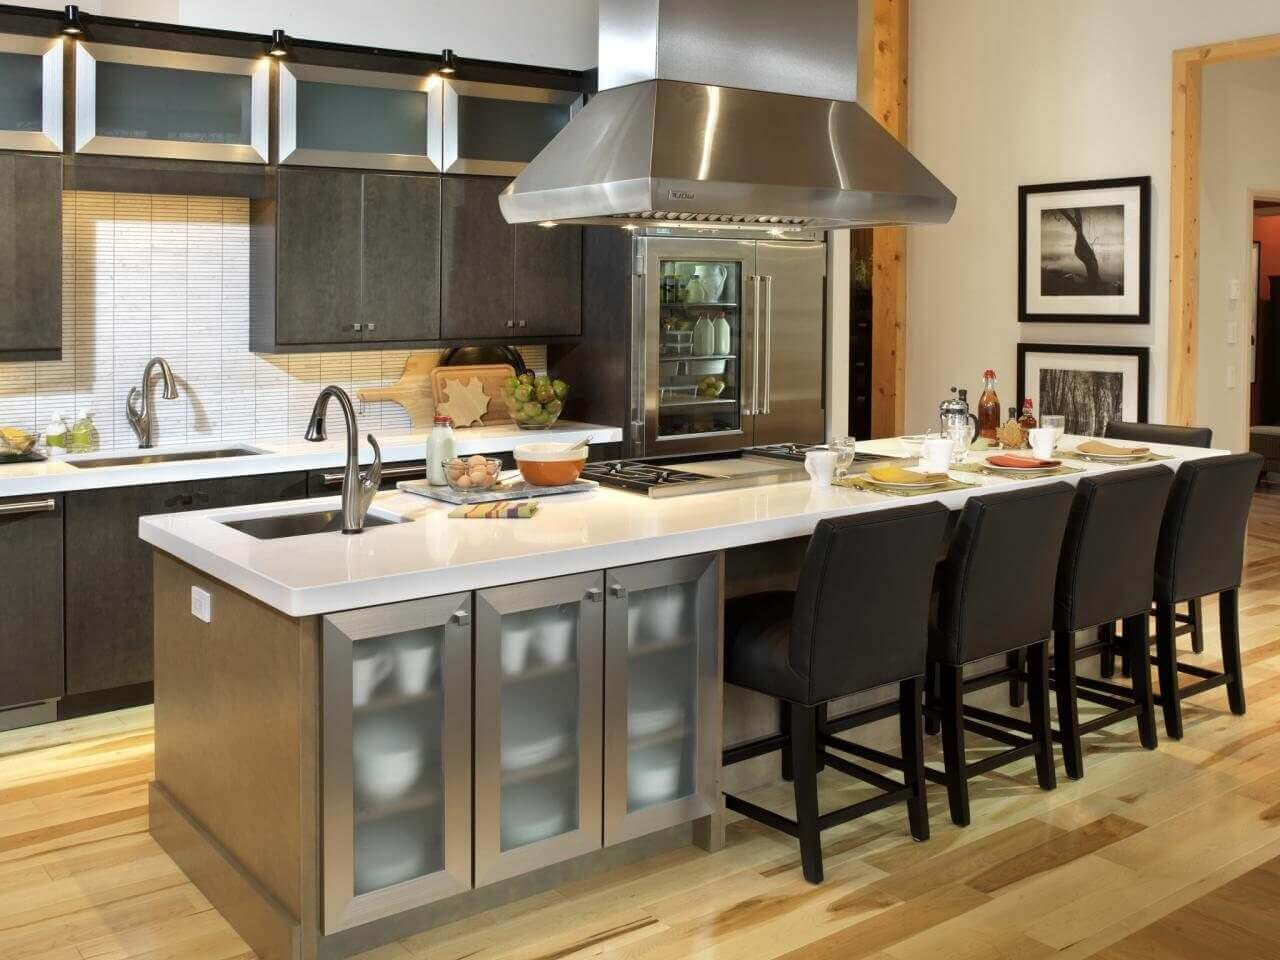 How To Make Kitchen Island With Seating